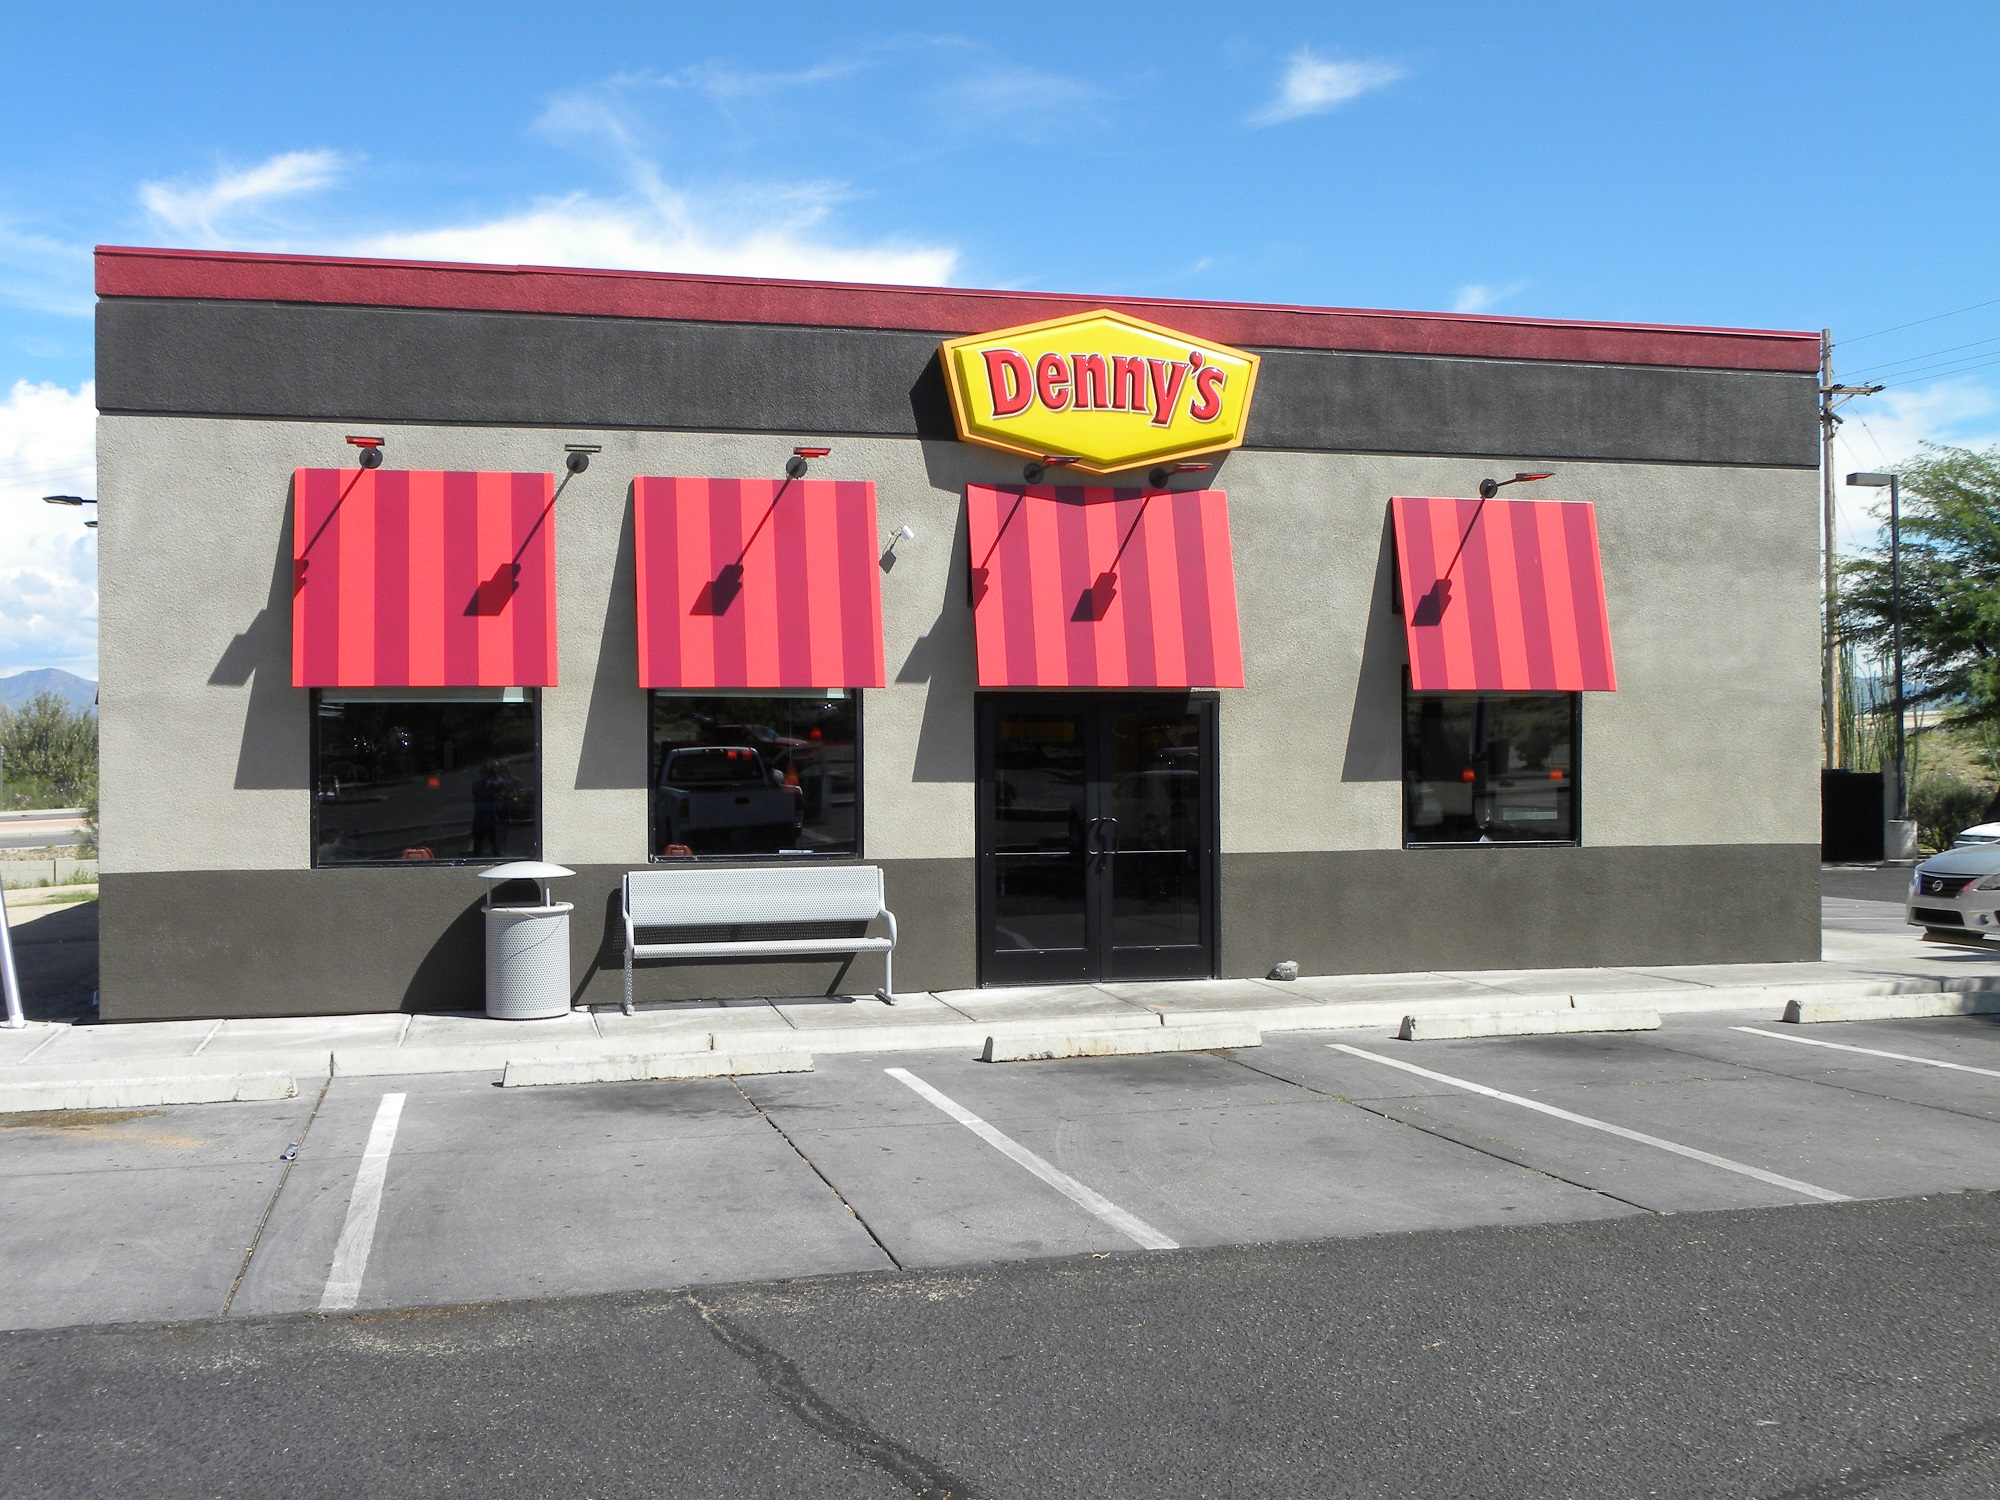 Commercial Awnings in Tucson